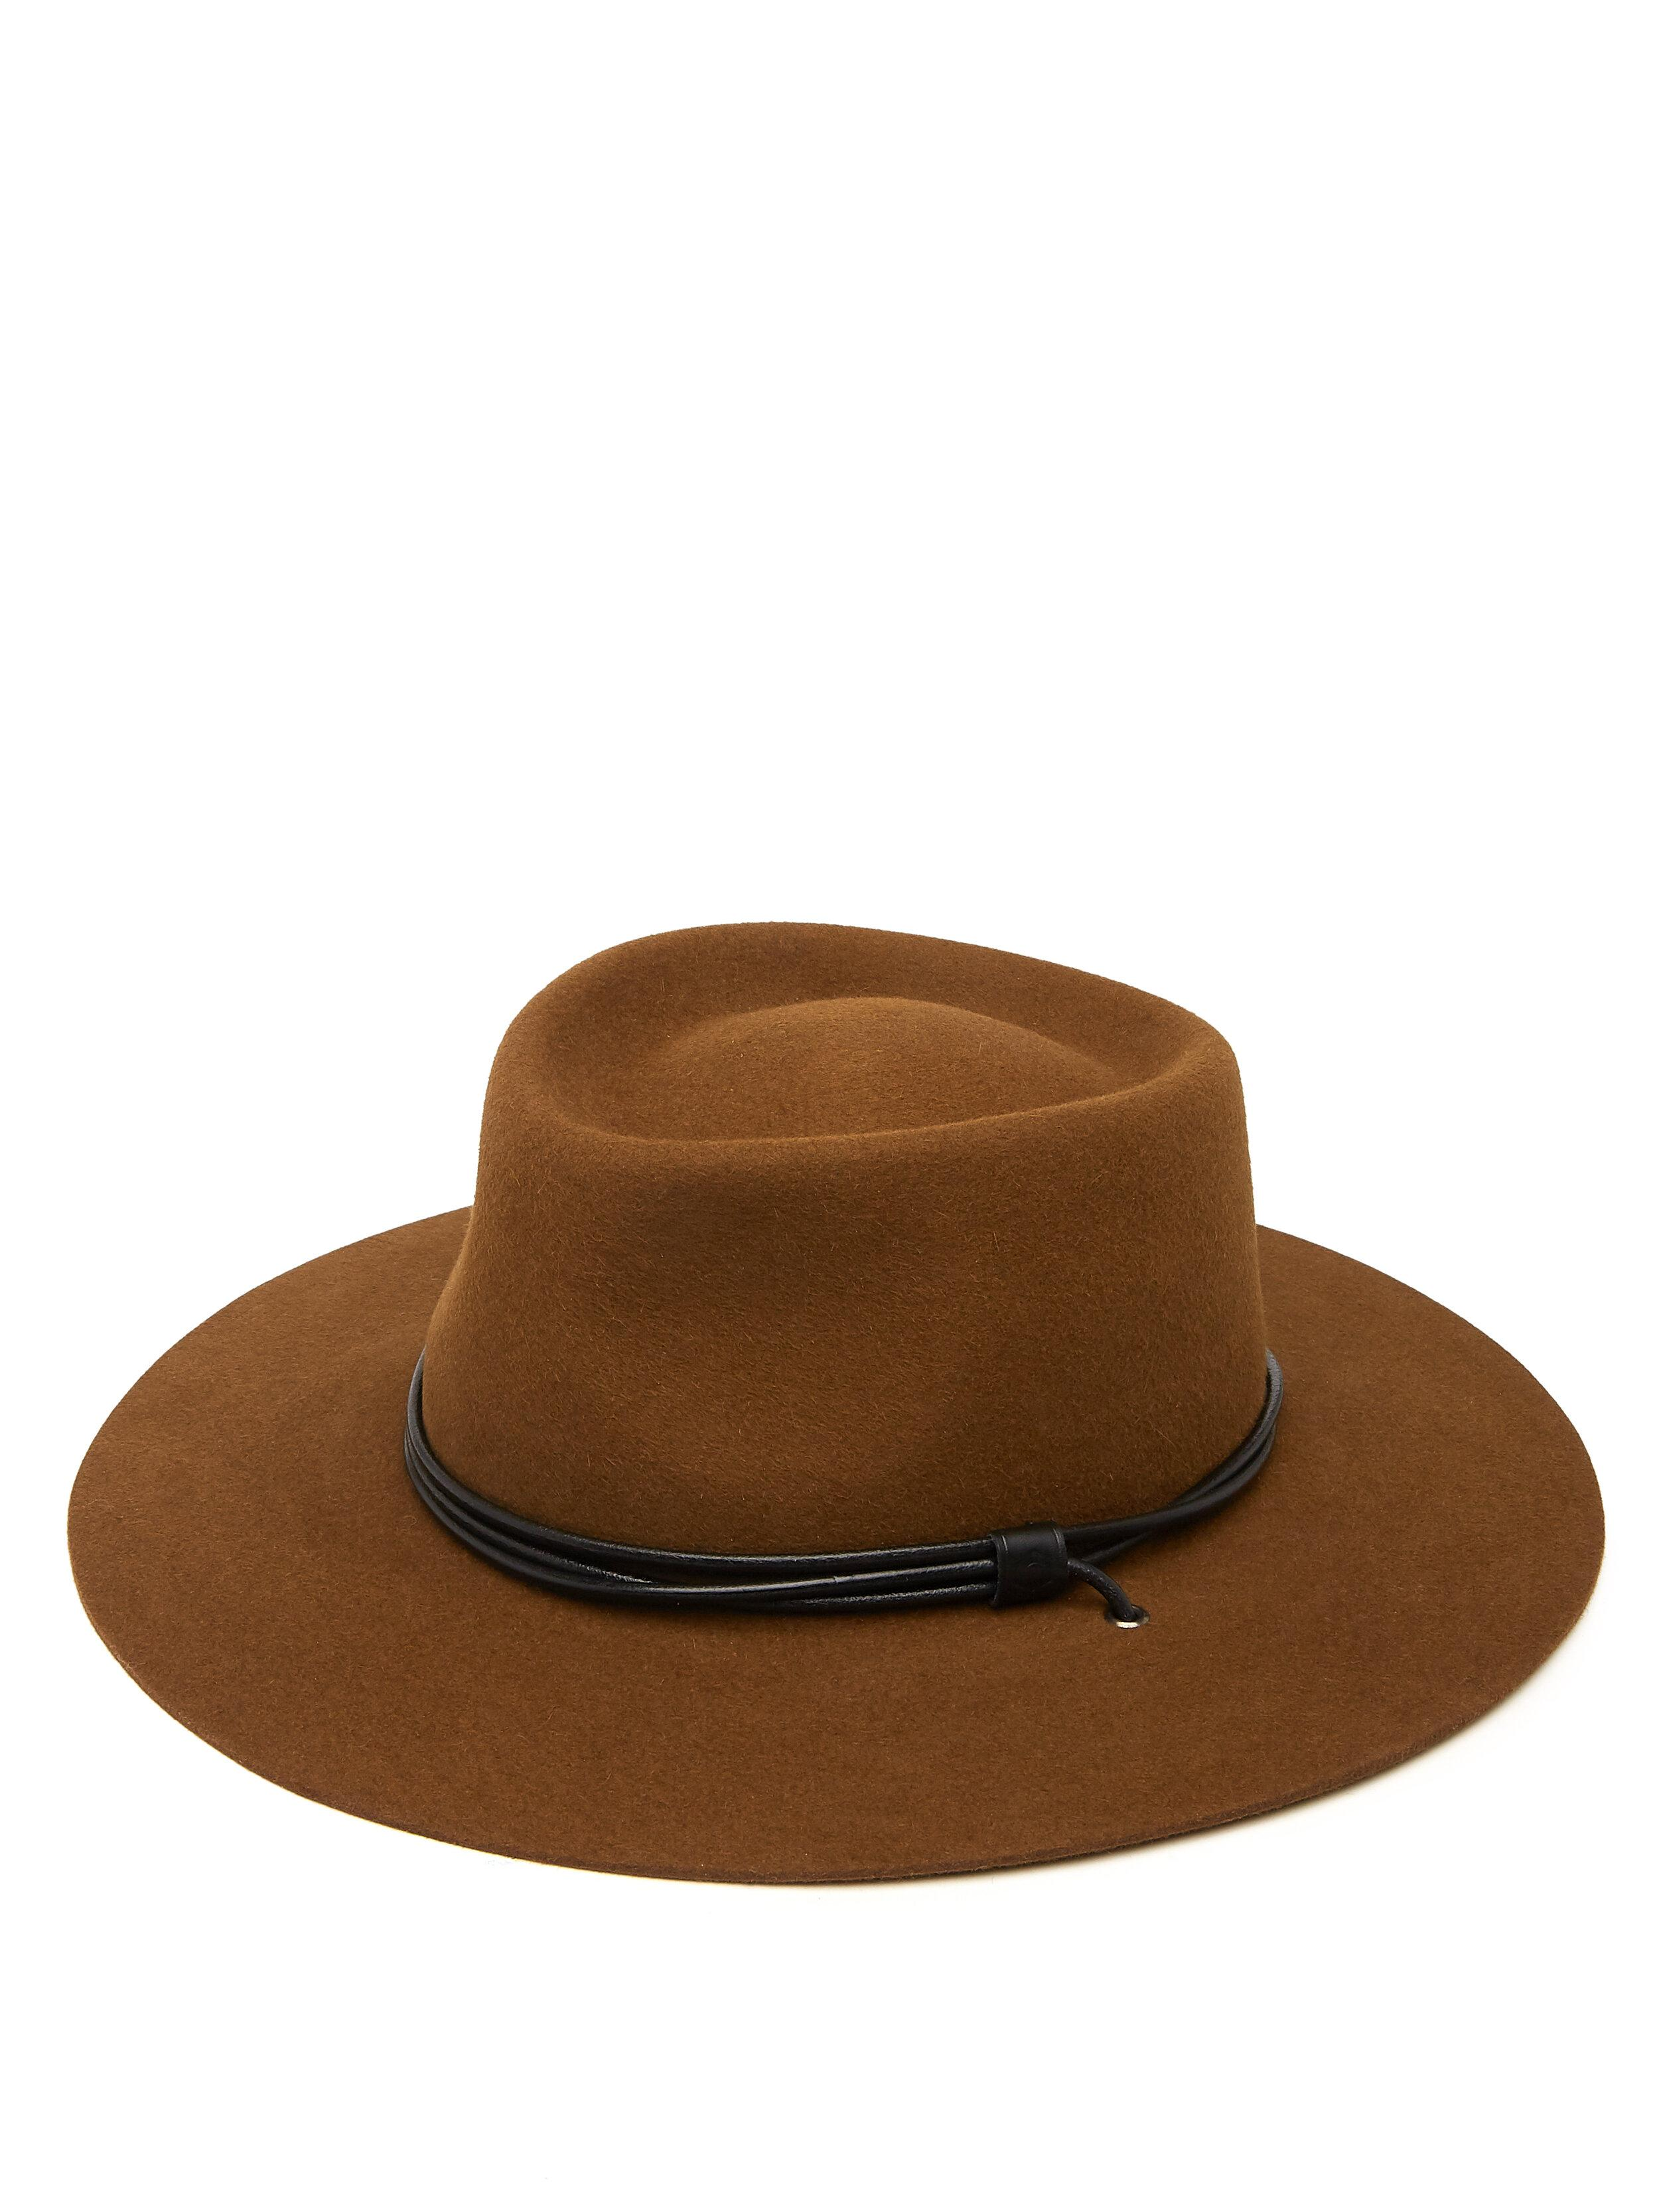 Doria1905 for ODP O'Keeffe Hat - Tobacco